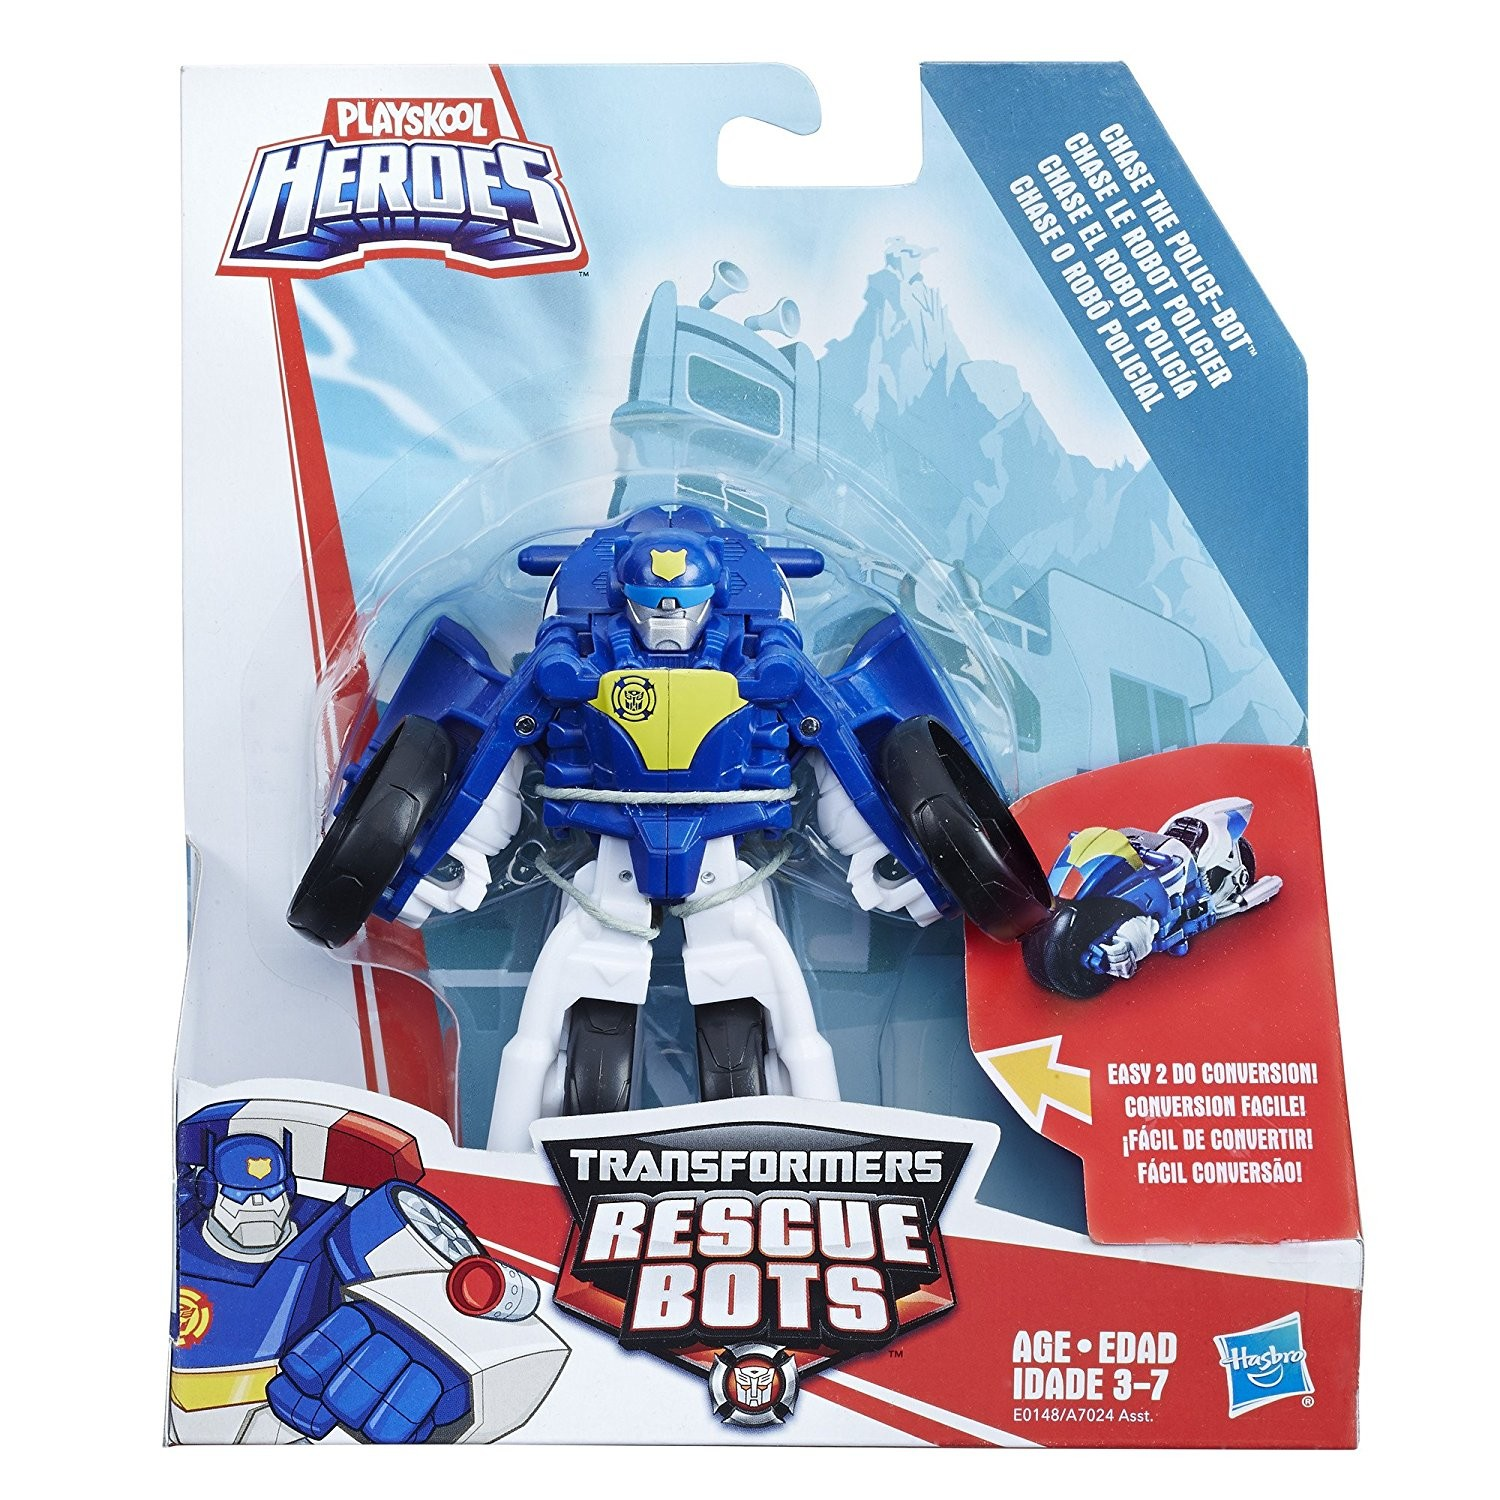 Transformers News: New Motorcycle Chase and Cement Mixer Salvage Toys from Rescue Bots